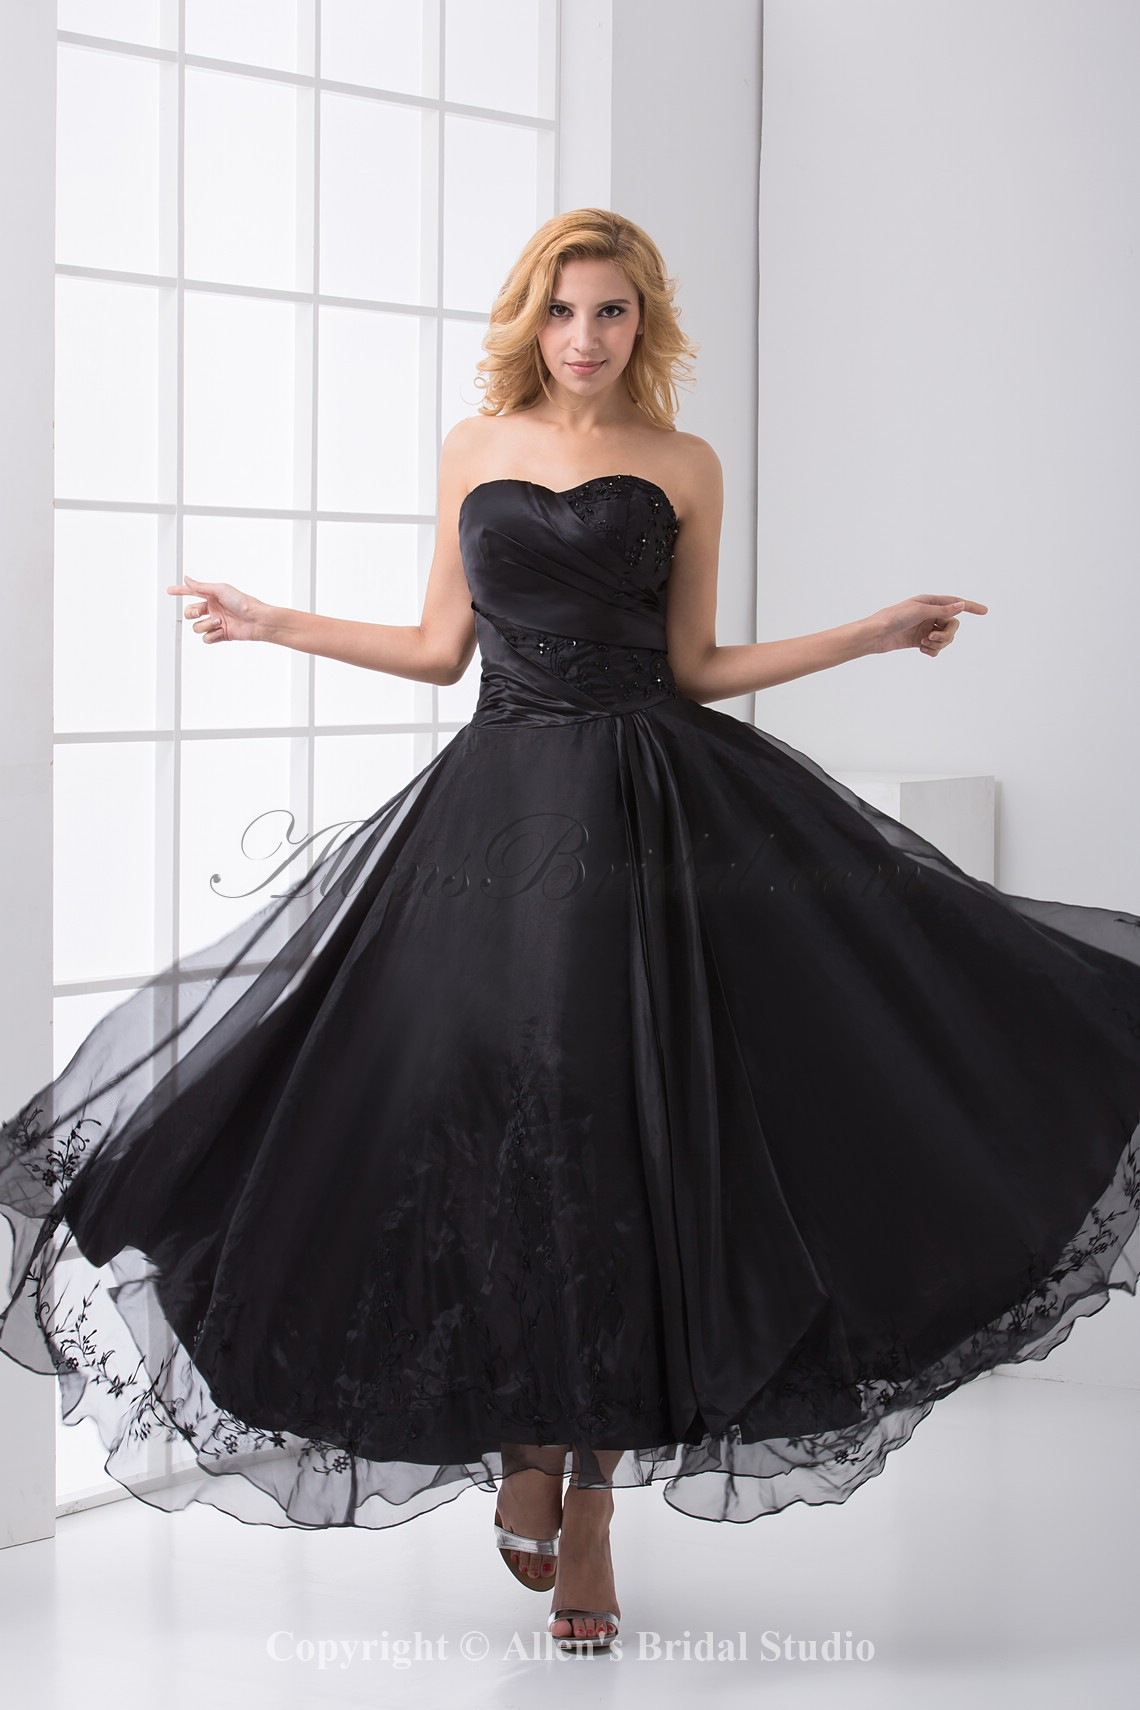 /177-1409/organza-sweetheart-a-line-ankle-length-embroidered-prom-dress.jpg